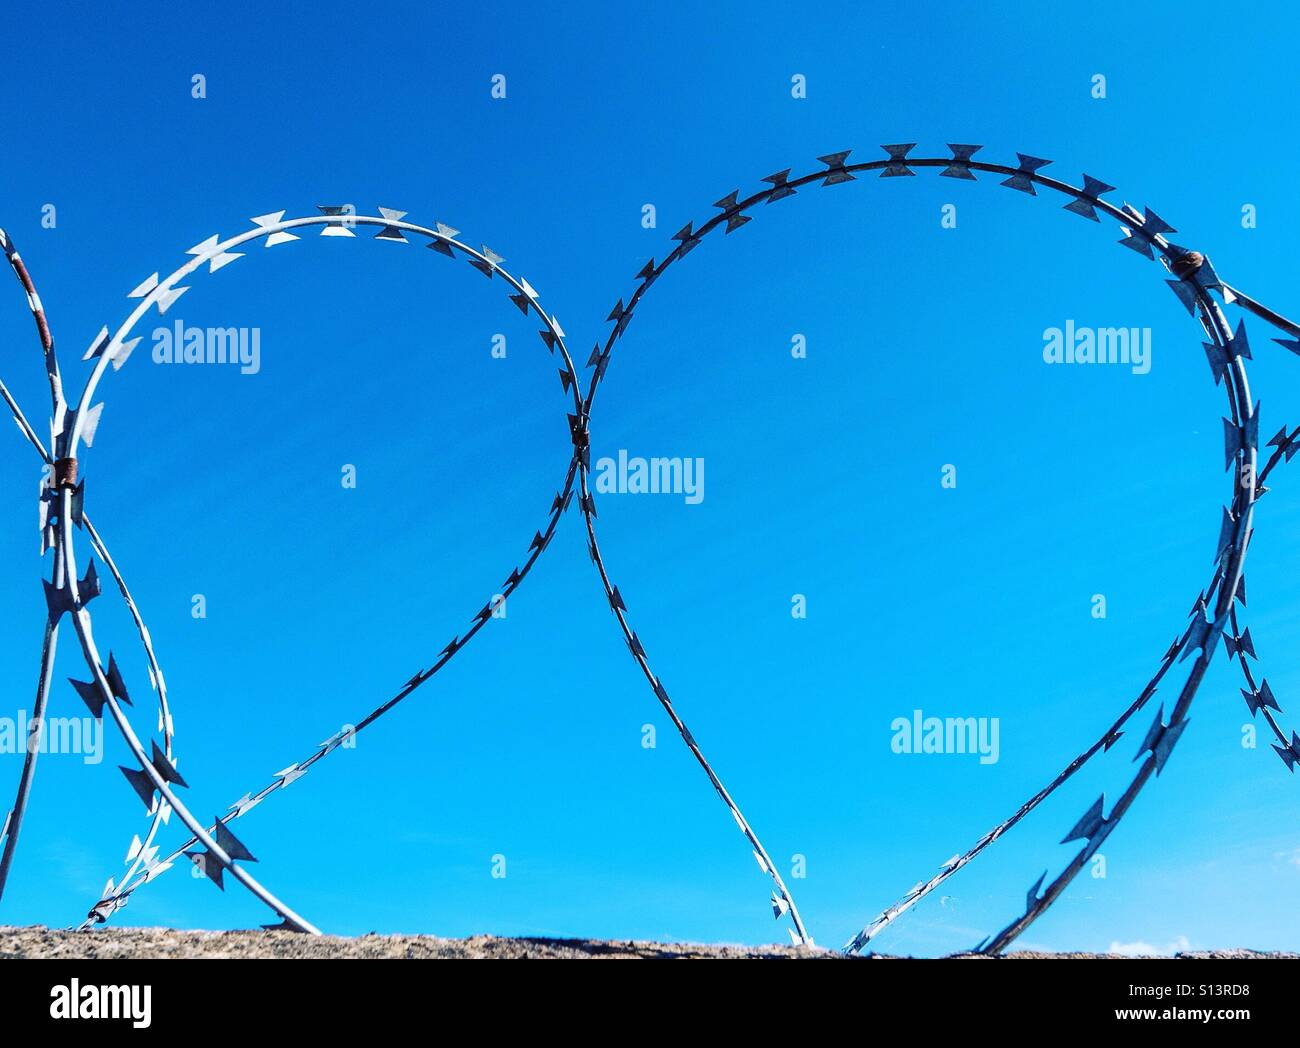 Wire Heart Stock Photos & Wire Heart Stock Images - Alamy